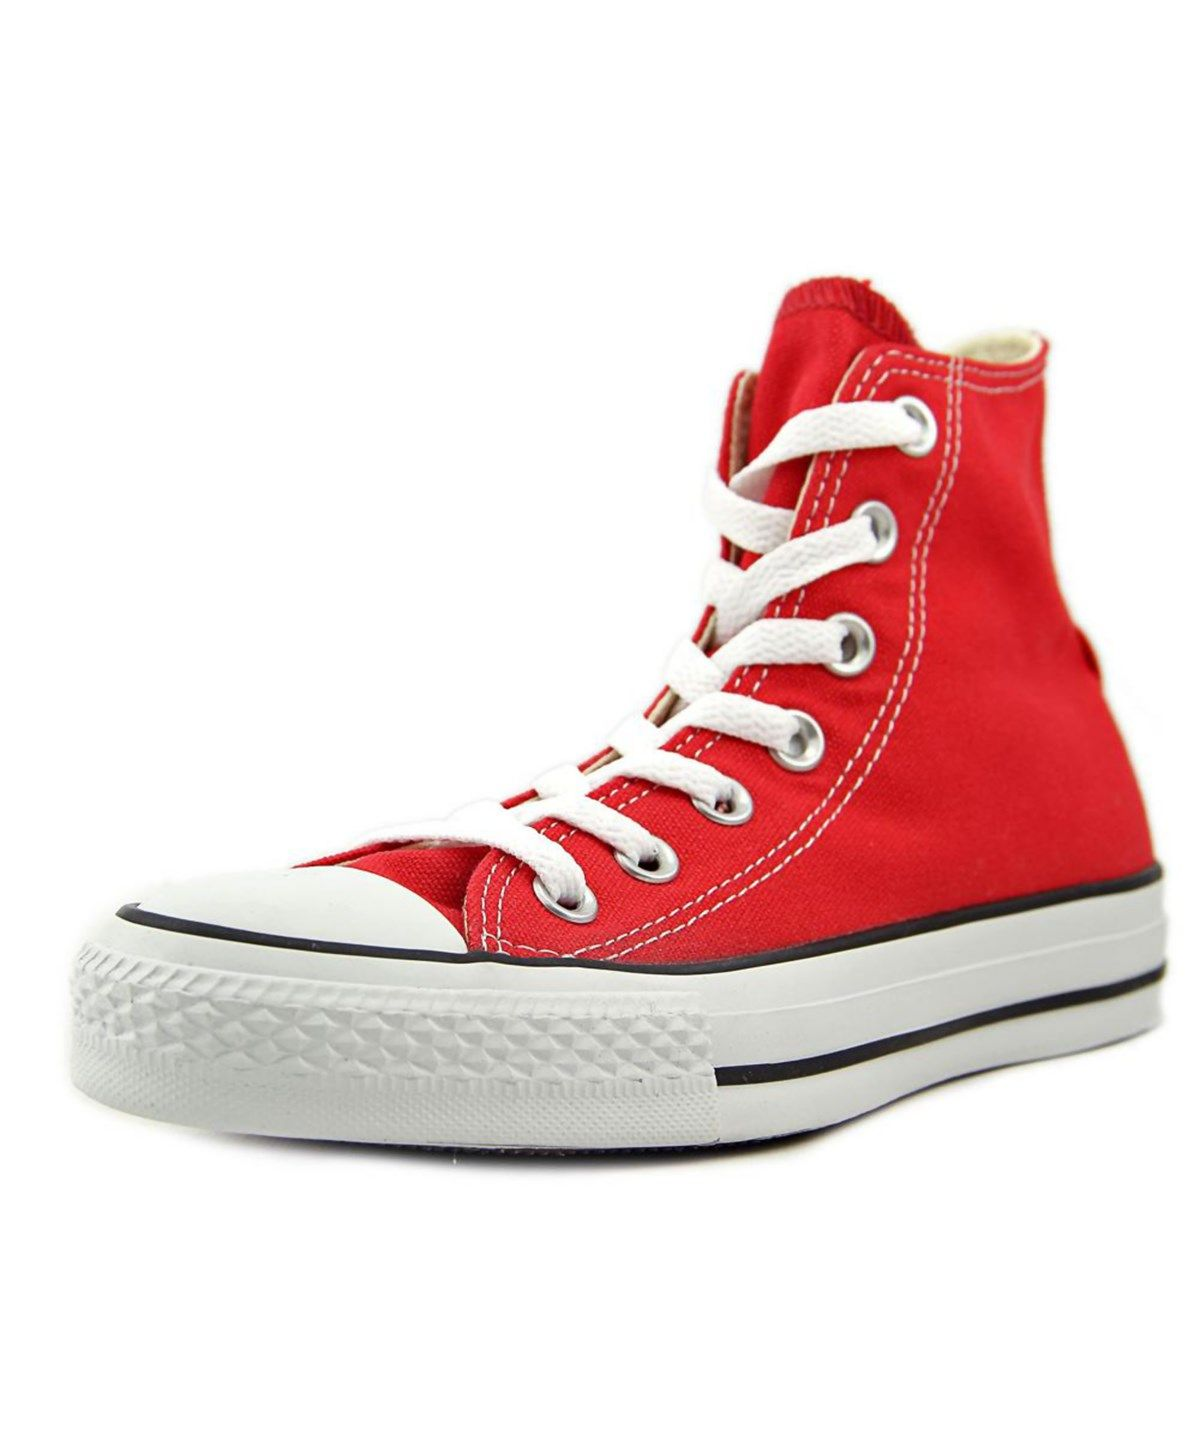 CONVERSE CONVERSE CHUCK TAYLOR ALL STAR CORE HI YOUTH ROUND TOE CANVAS RED  SNEAKERS'.